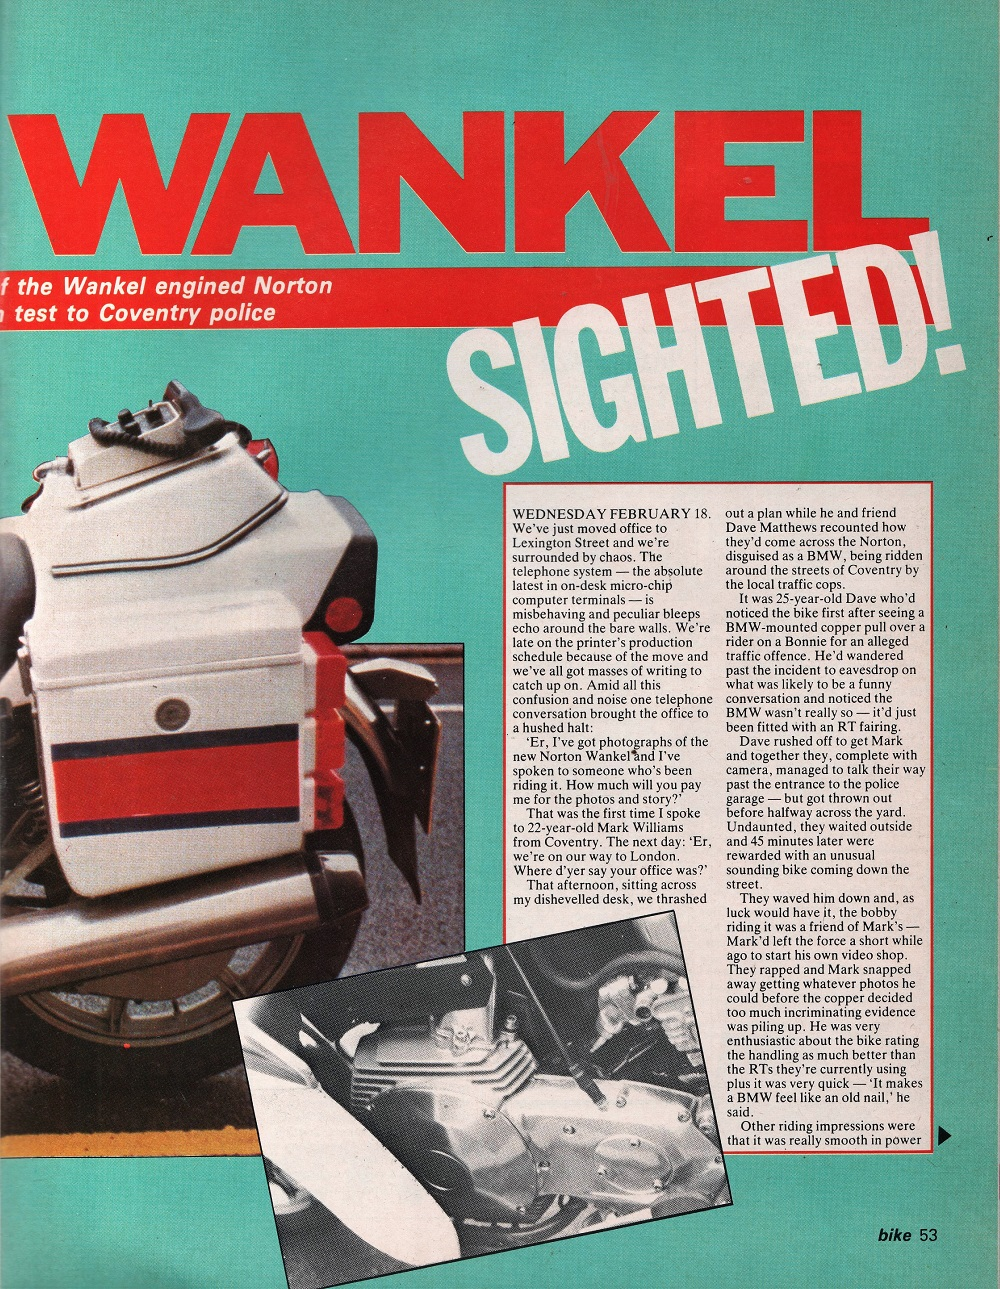 1982 Norton Wankel road test.2.jpg